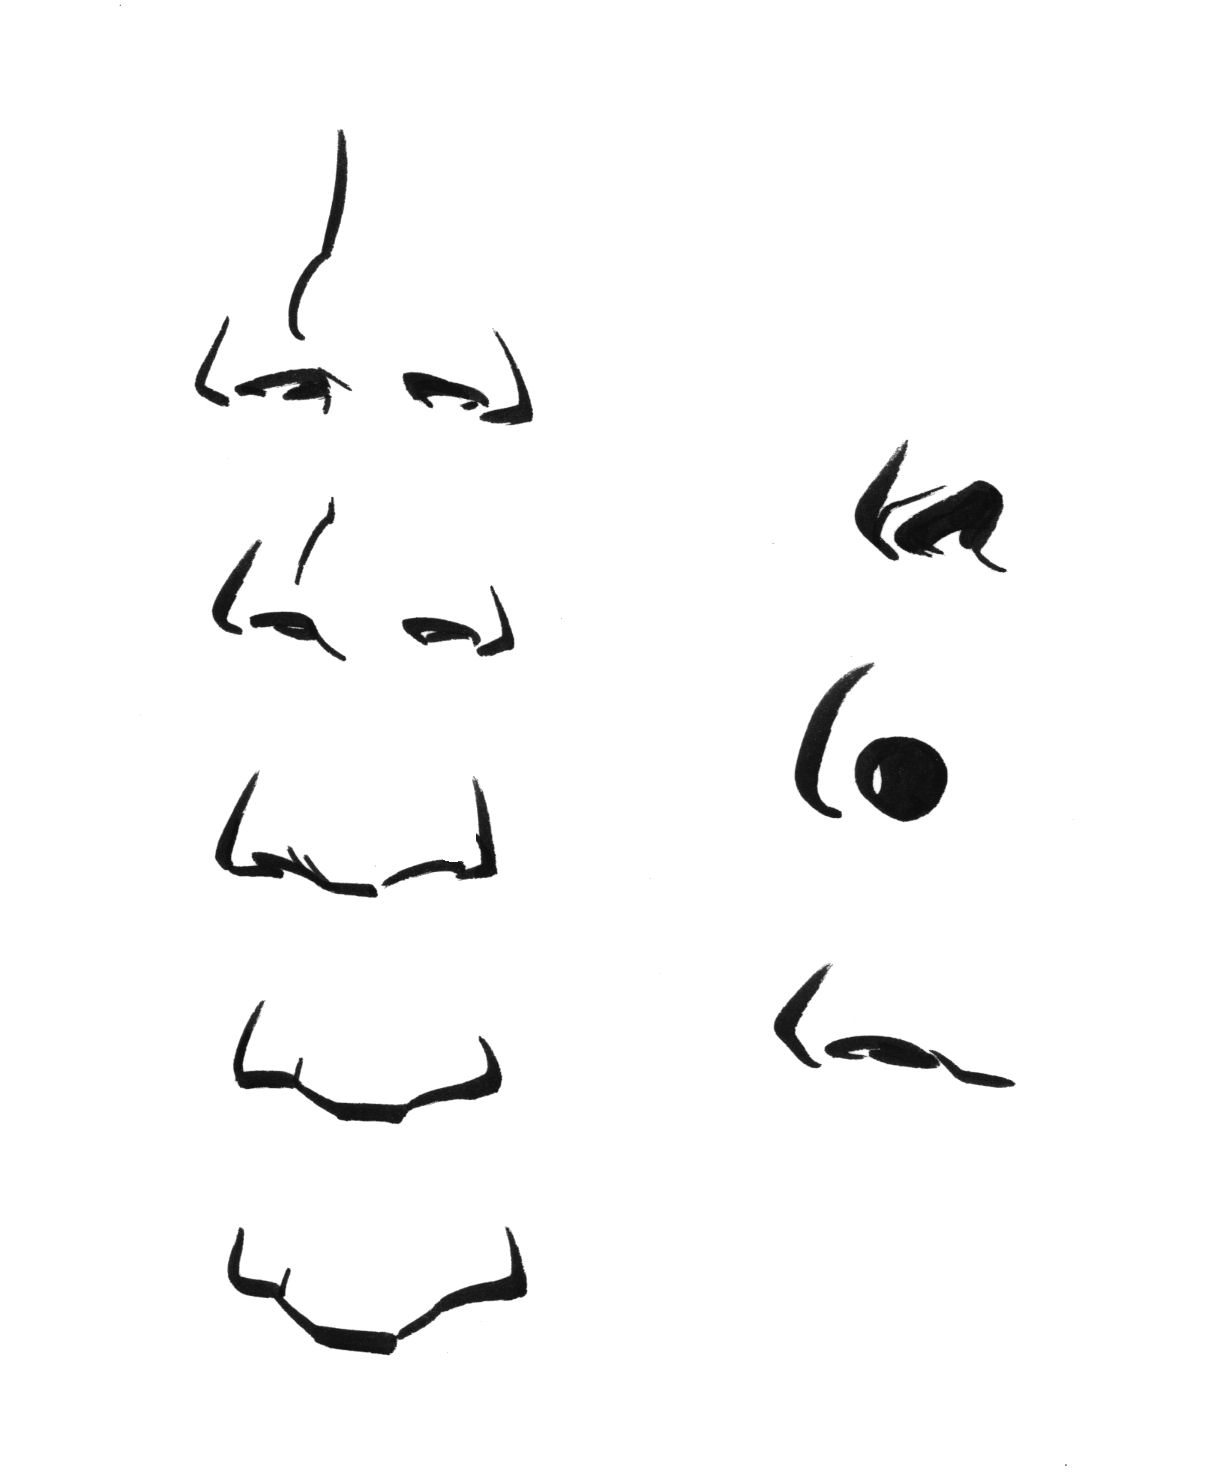 Some Folks Have A Very Turnedup Nose This Example, On The Far Upper Left,